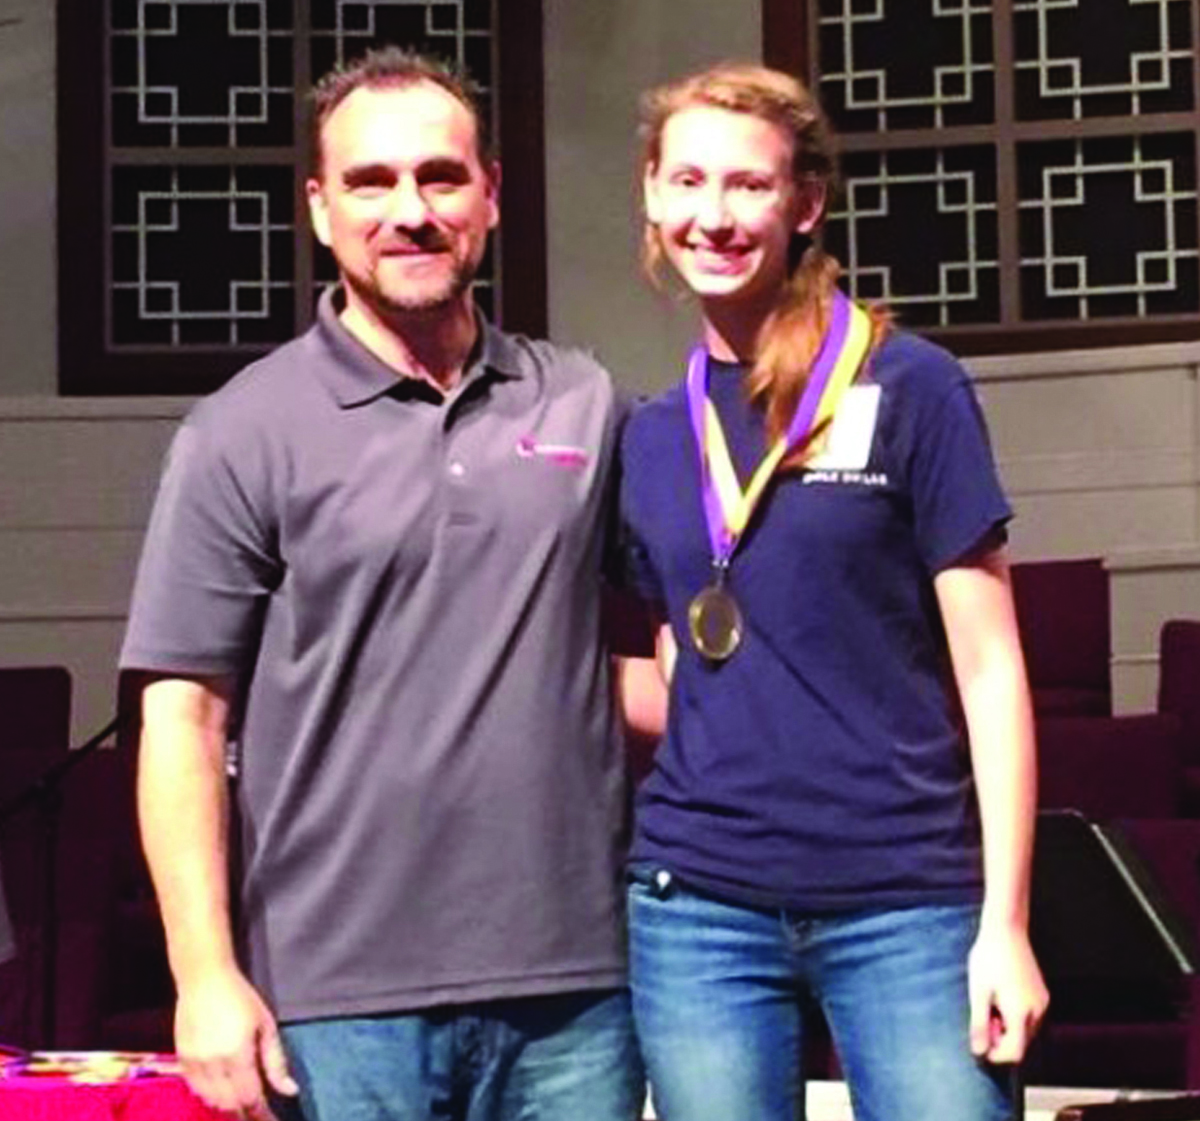 Chloe Whitehead, a ninth-grader, placed first at the State Bible Drill. She will represent Louisiana at the national competition. Steve Maltempi presented her with the winning award.